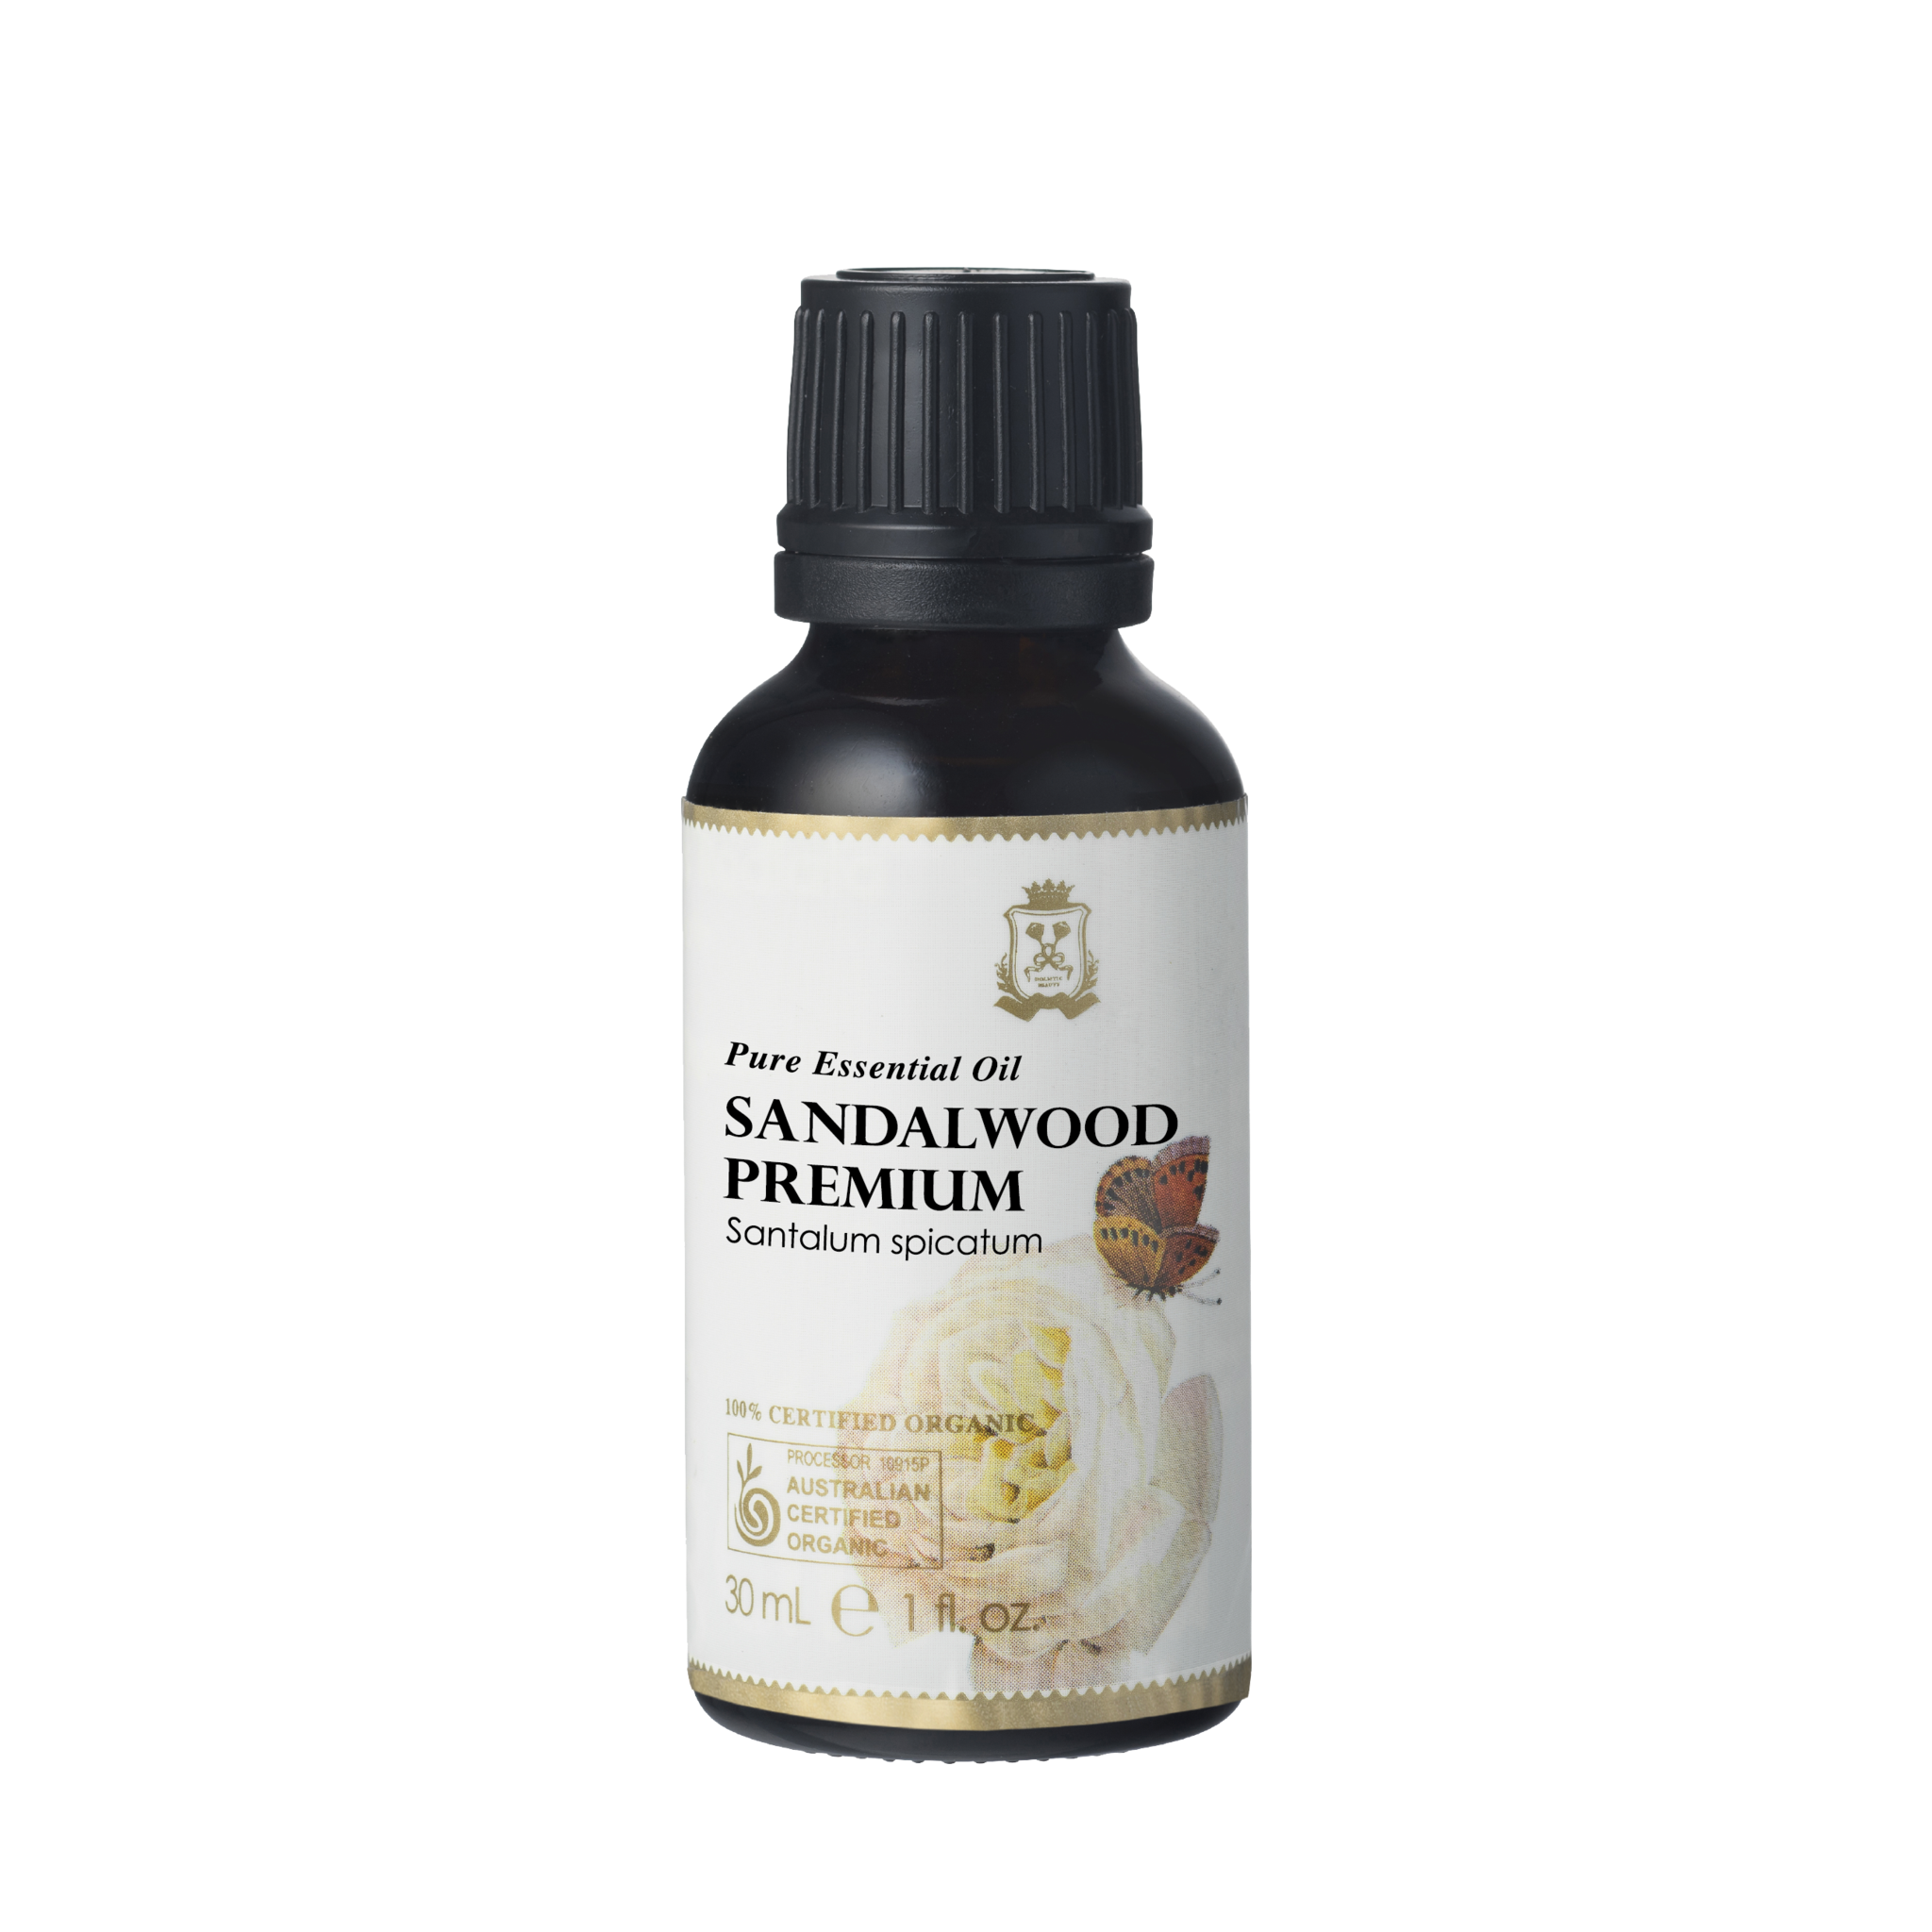 Sandalwood Premium Essential Oil